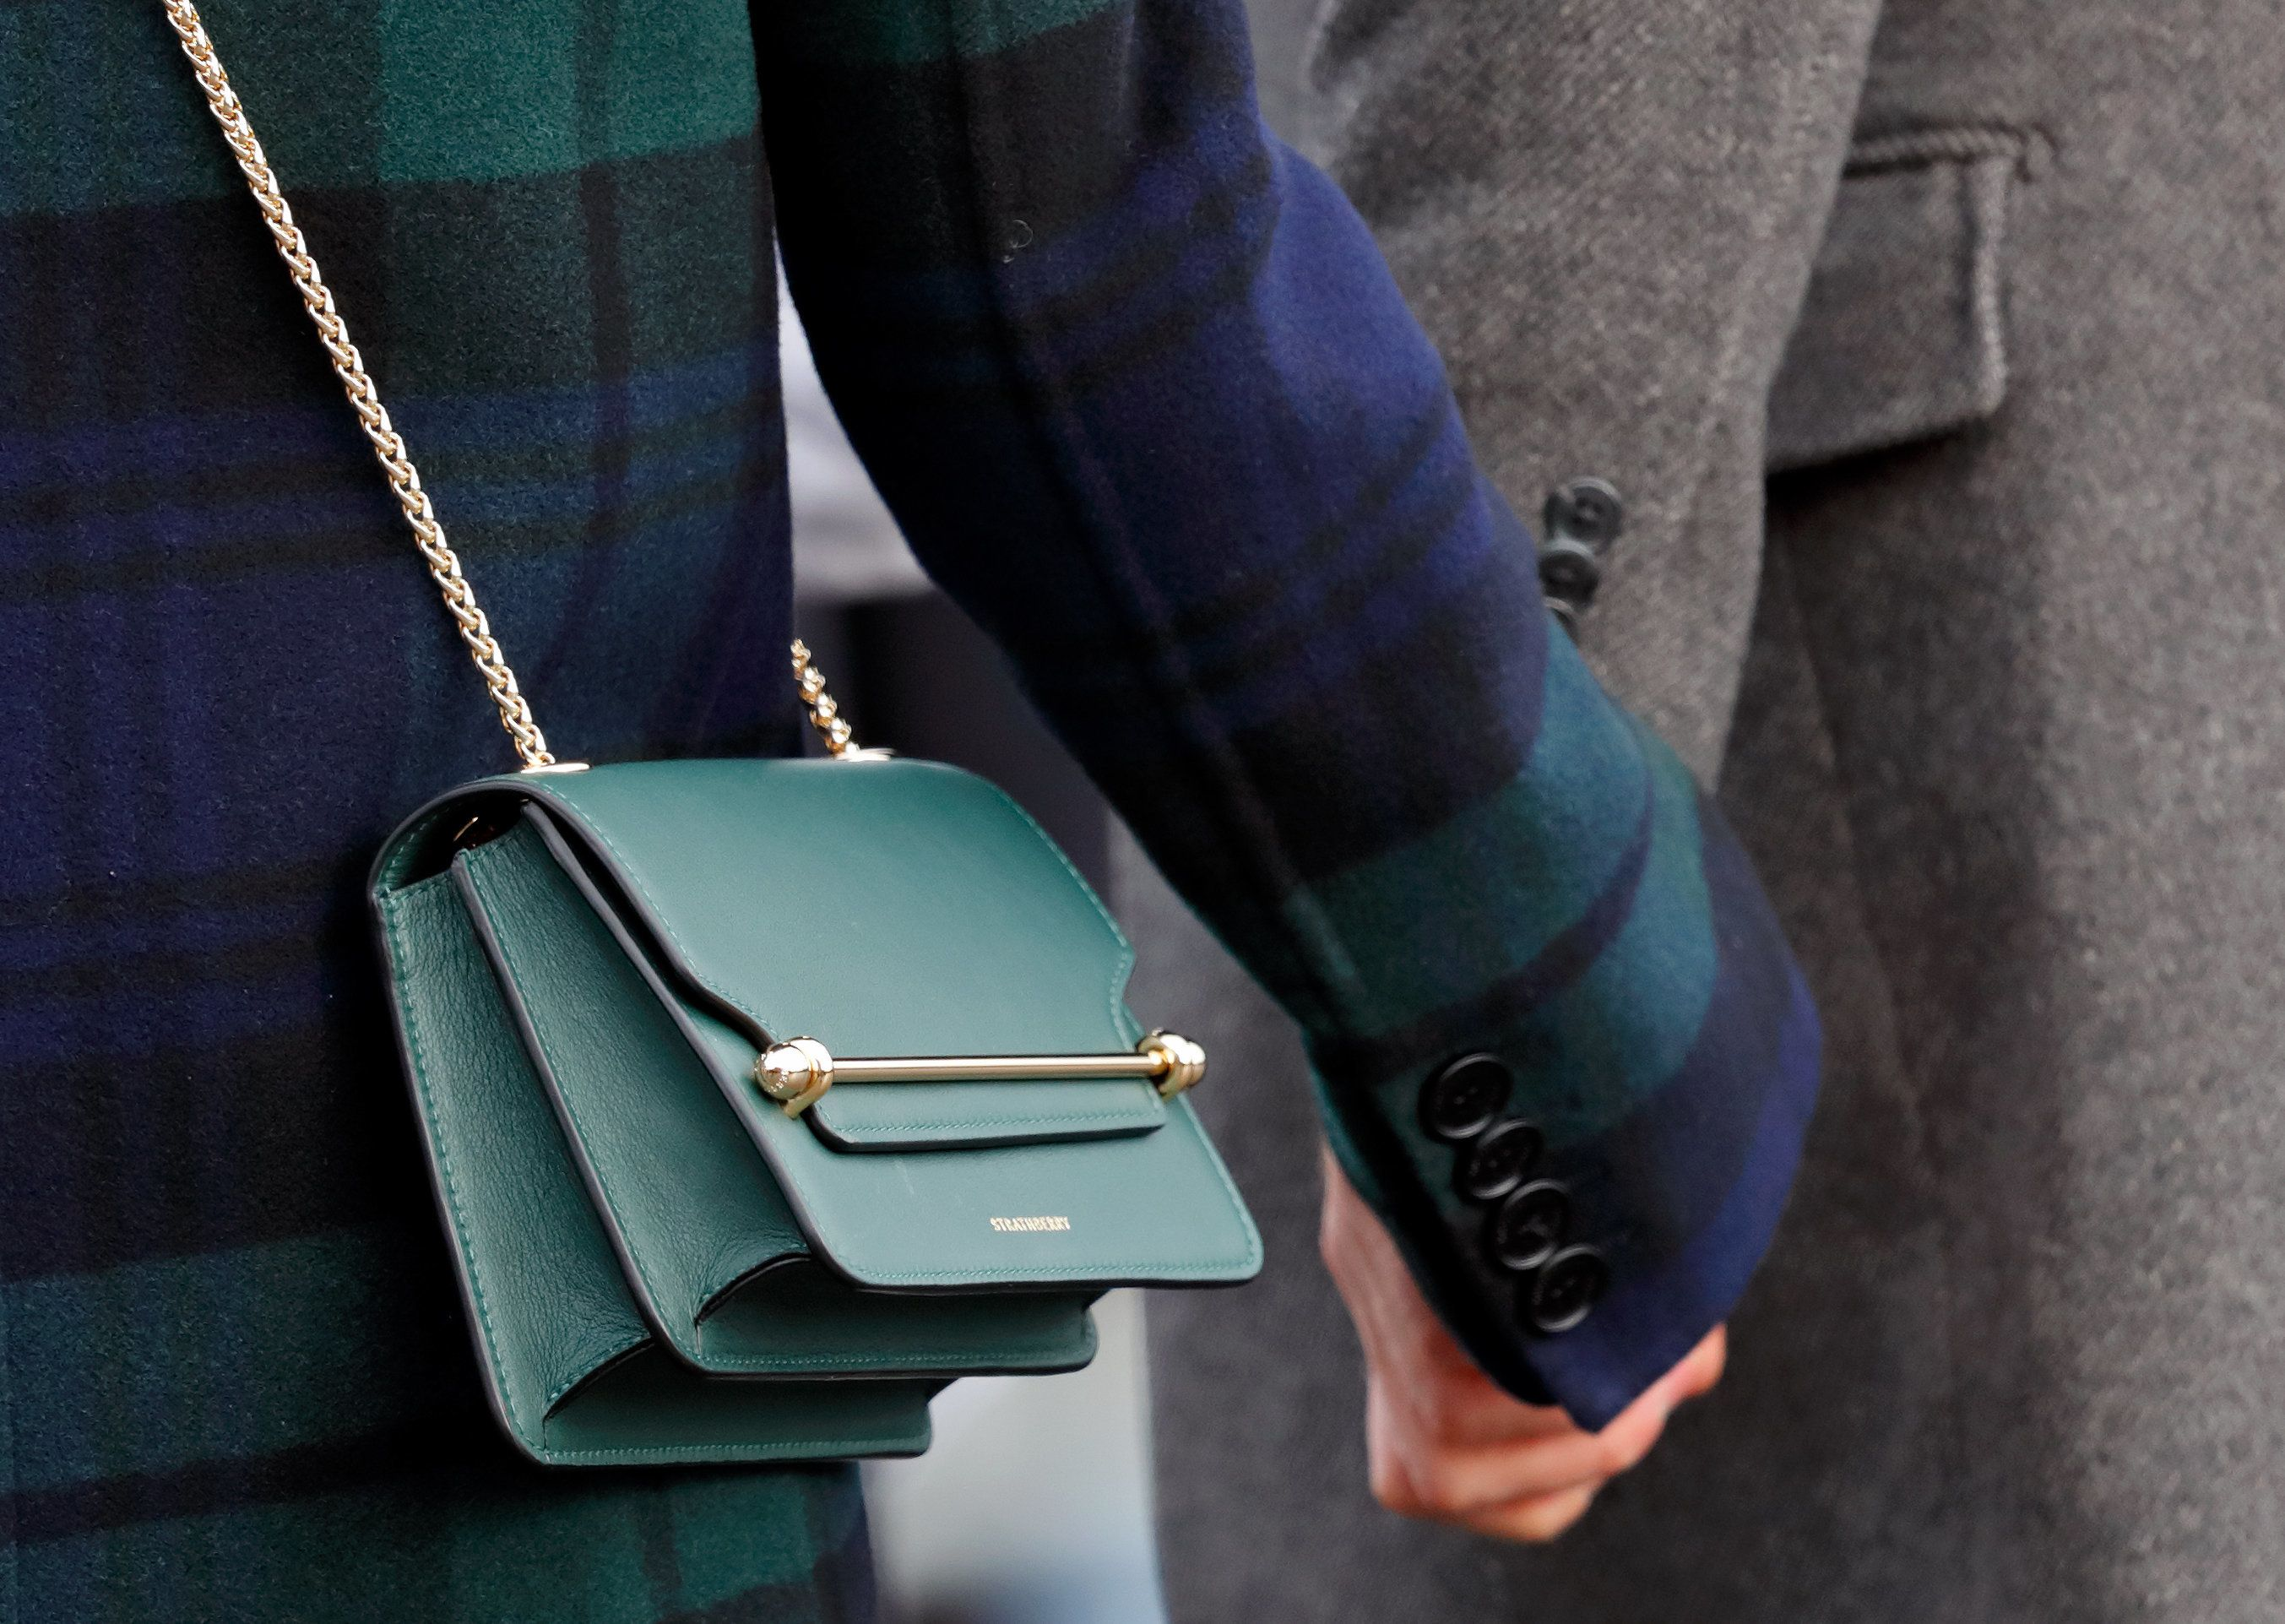 Want Meghan Markle's Strathberry Bag? The Waiting List Has Topped 1,000